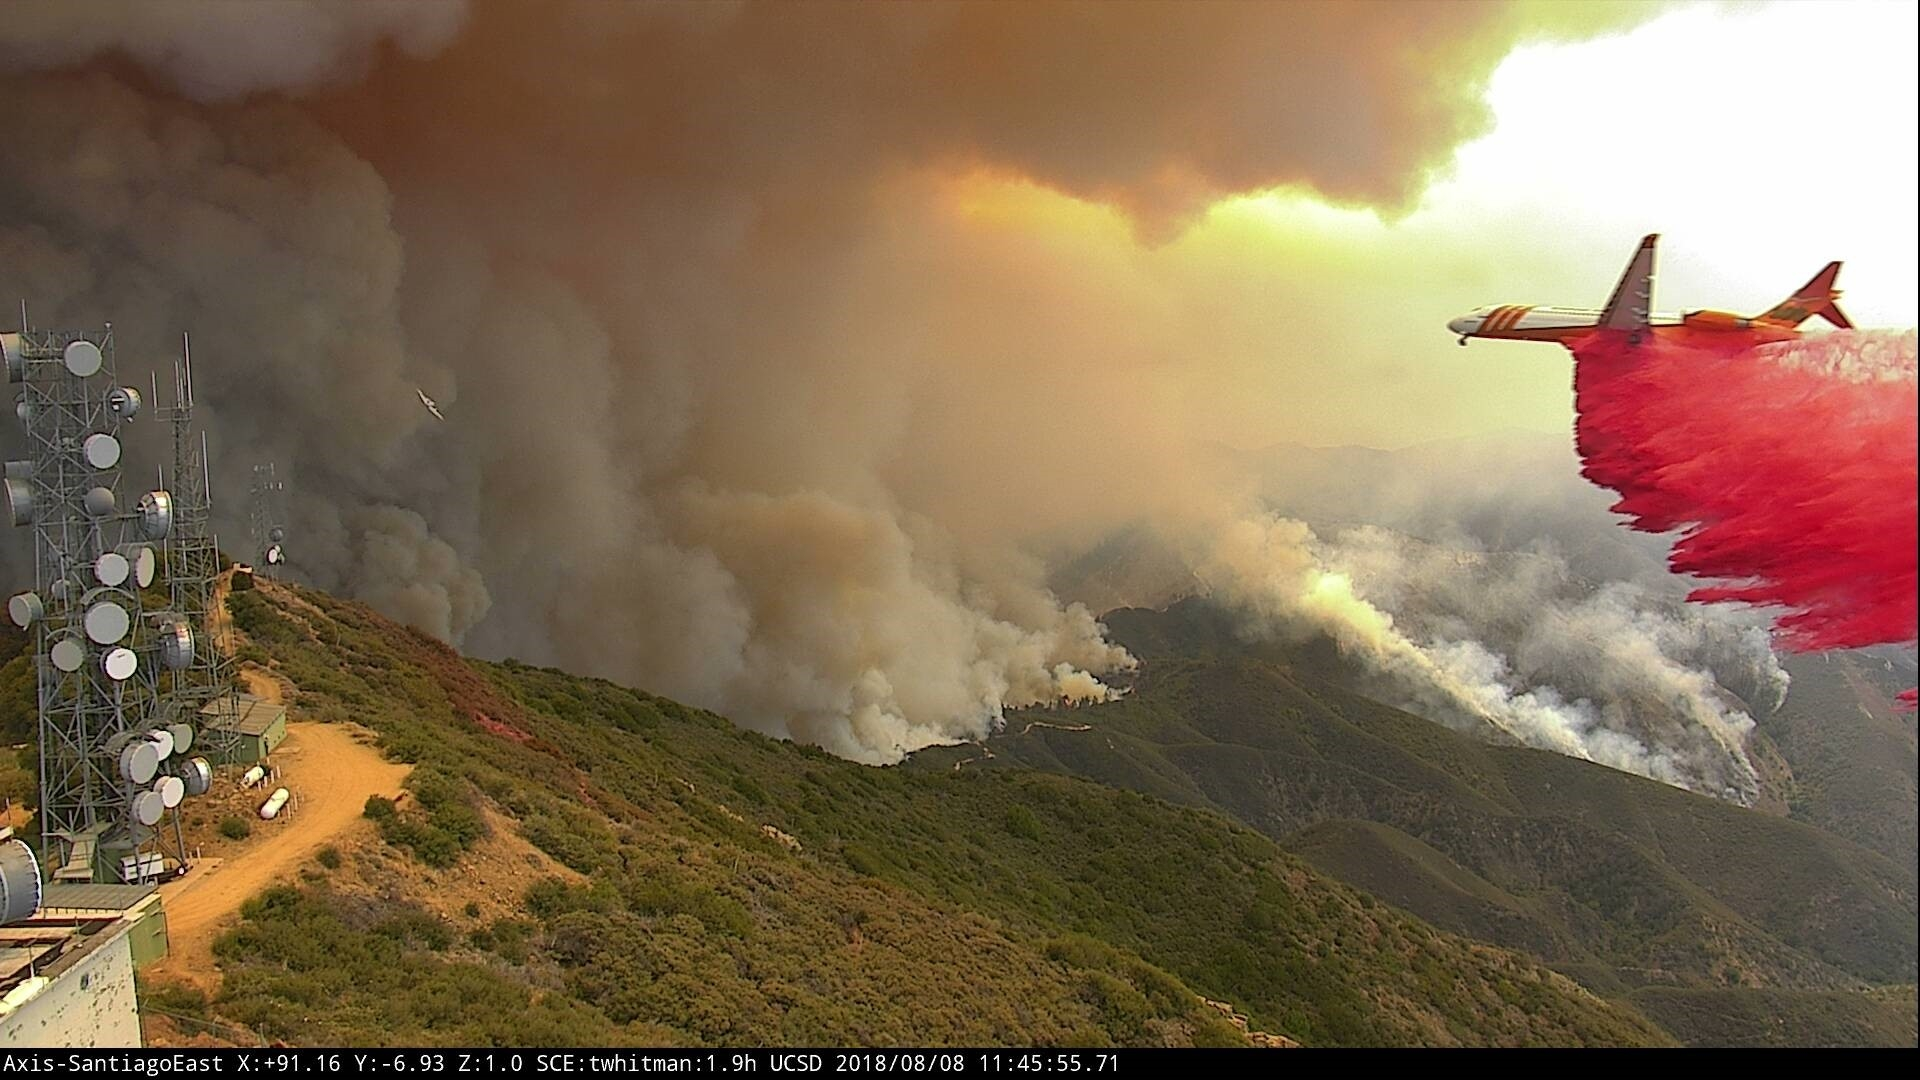 A plane drops fire retardant on the Holy Fire near Santiago Peak captured by a HD SCE camera connected to UCSD's wildfire camera network.